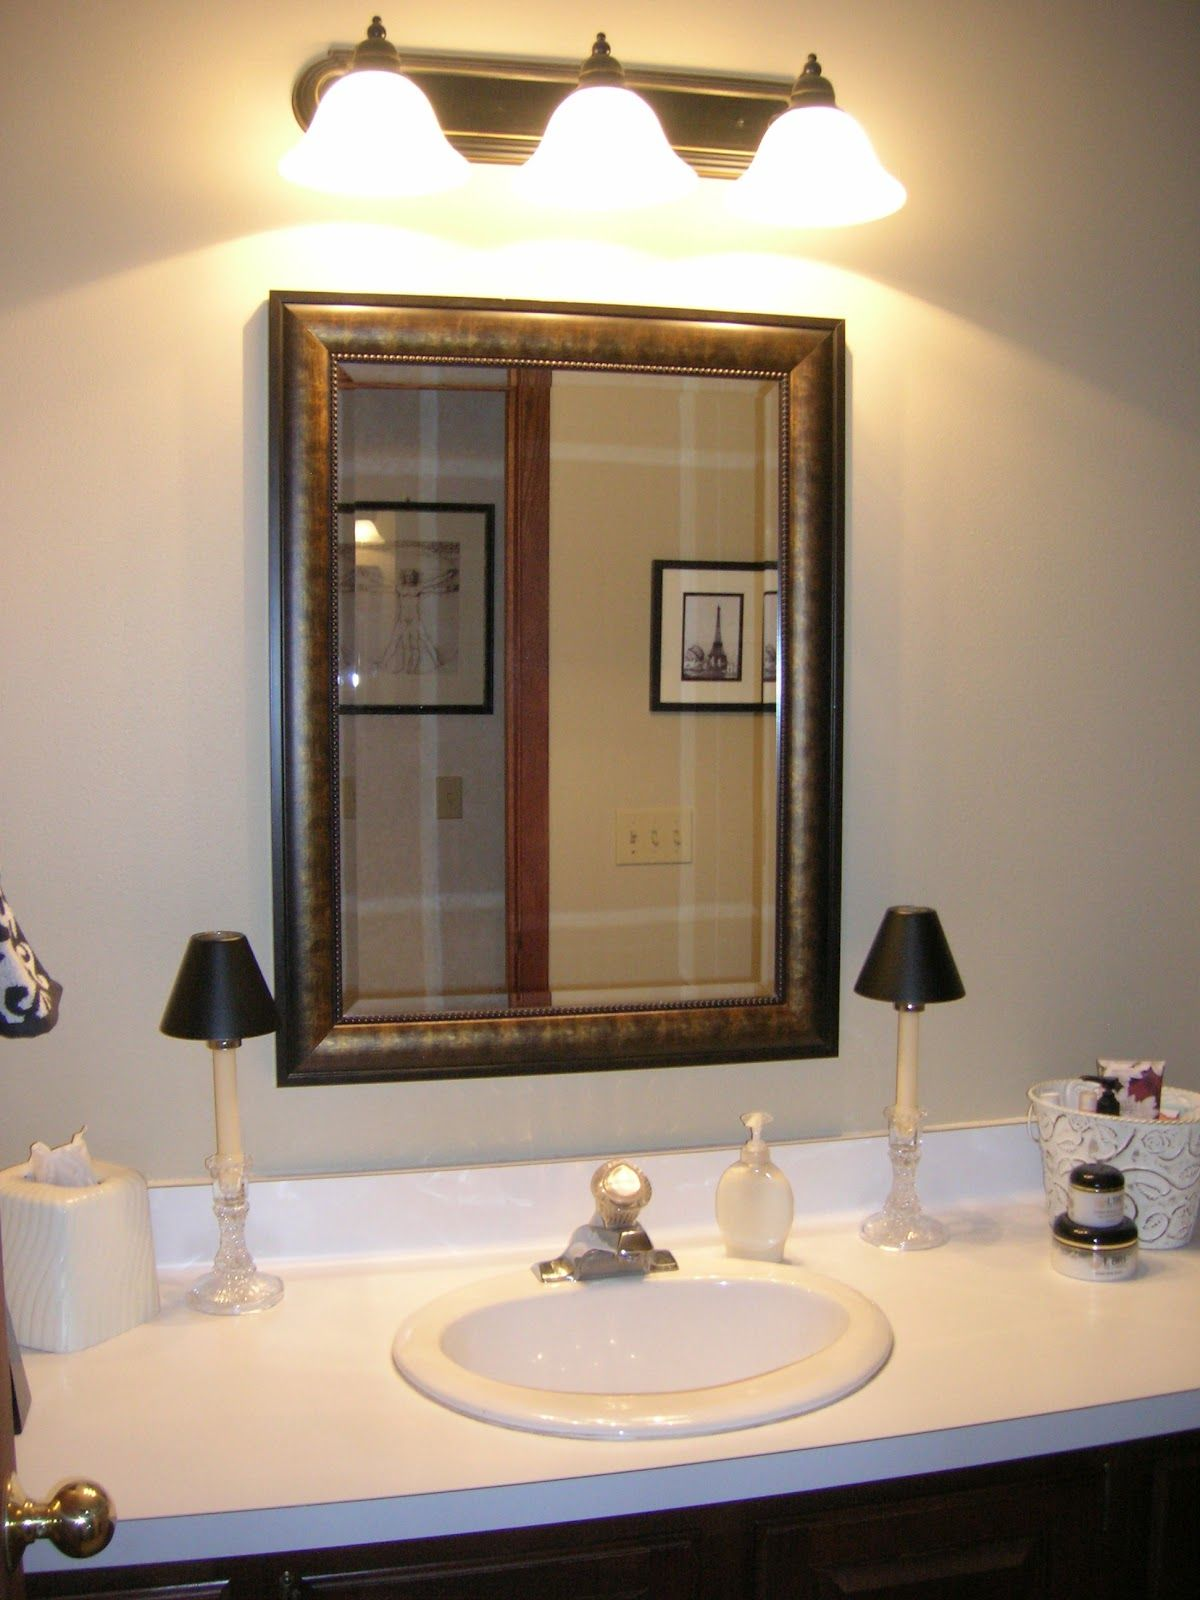 bathroom lighting over large mirror | Home Inspirations | Pinterest ...